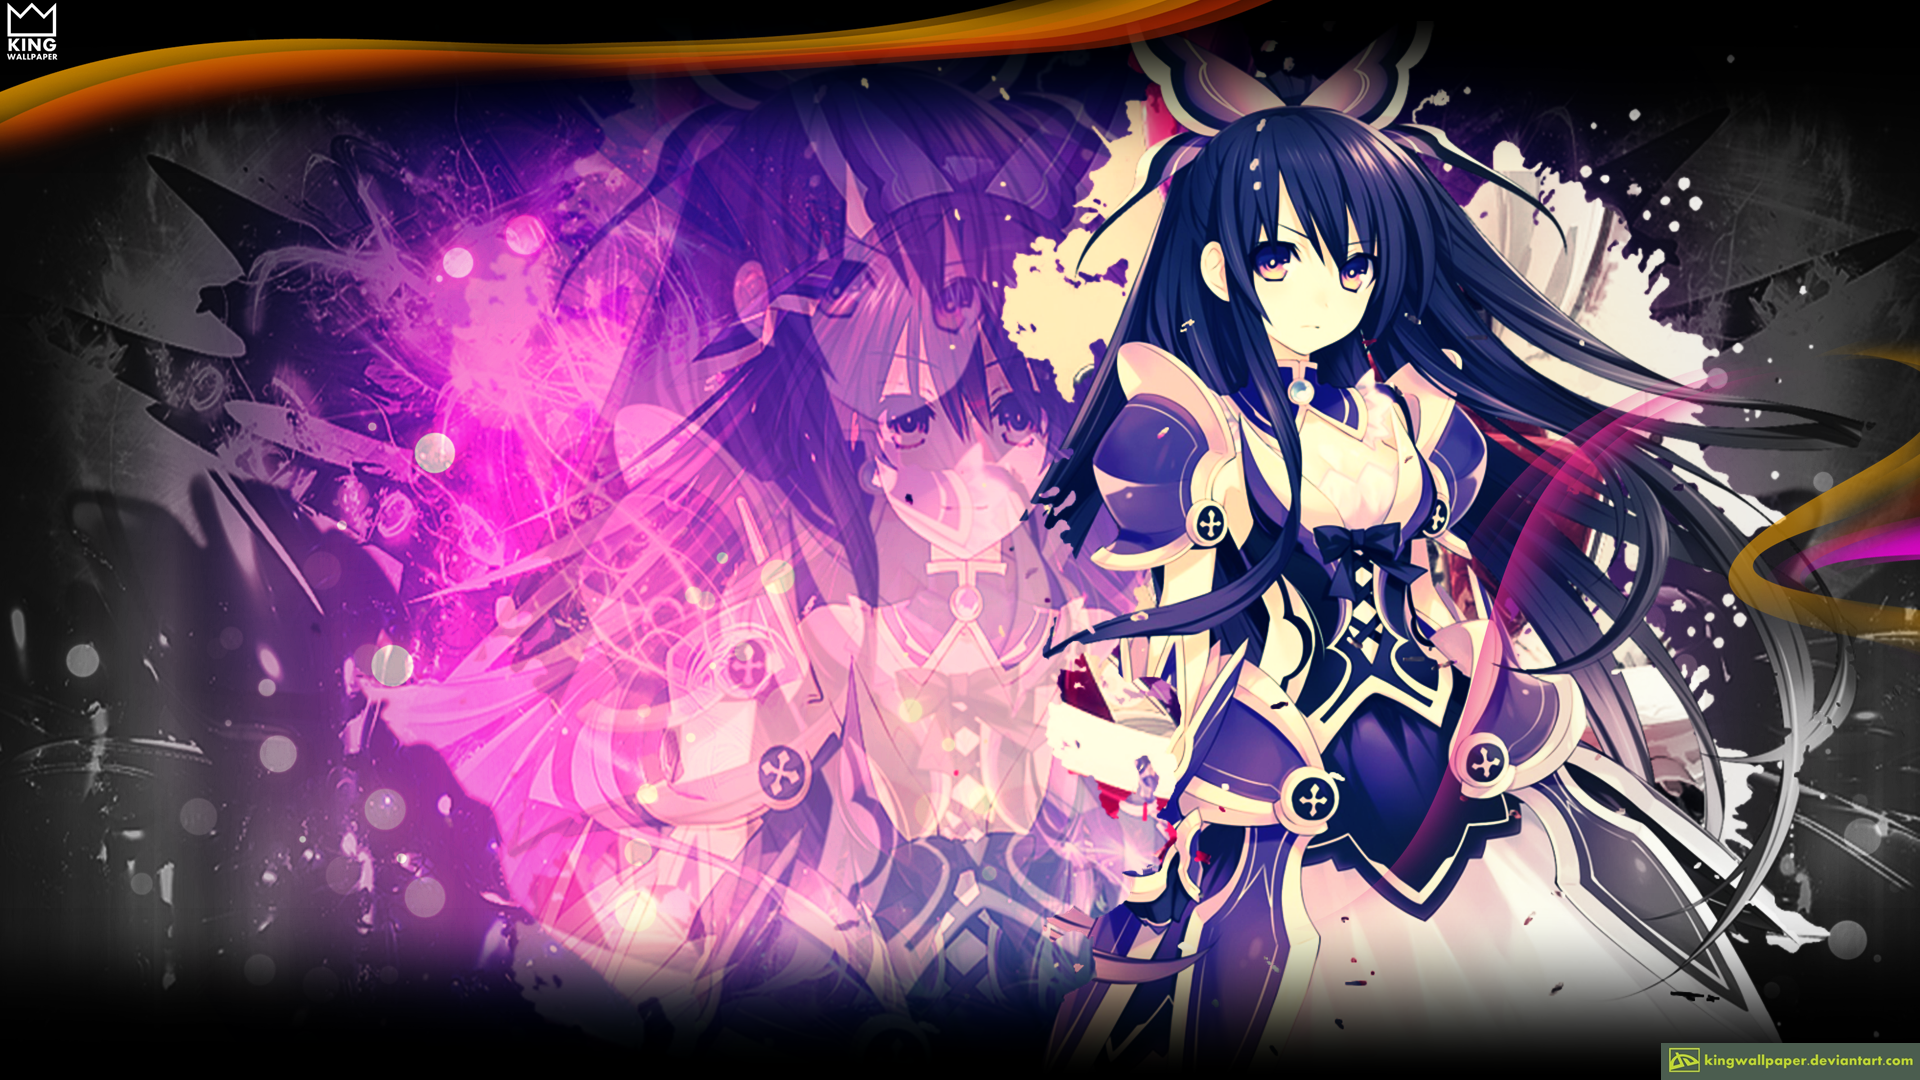 Tohka - @Date A live by Kingwallpaper on deviantART Date A Live Tohka Wallpaper